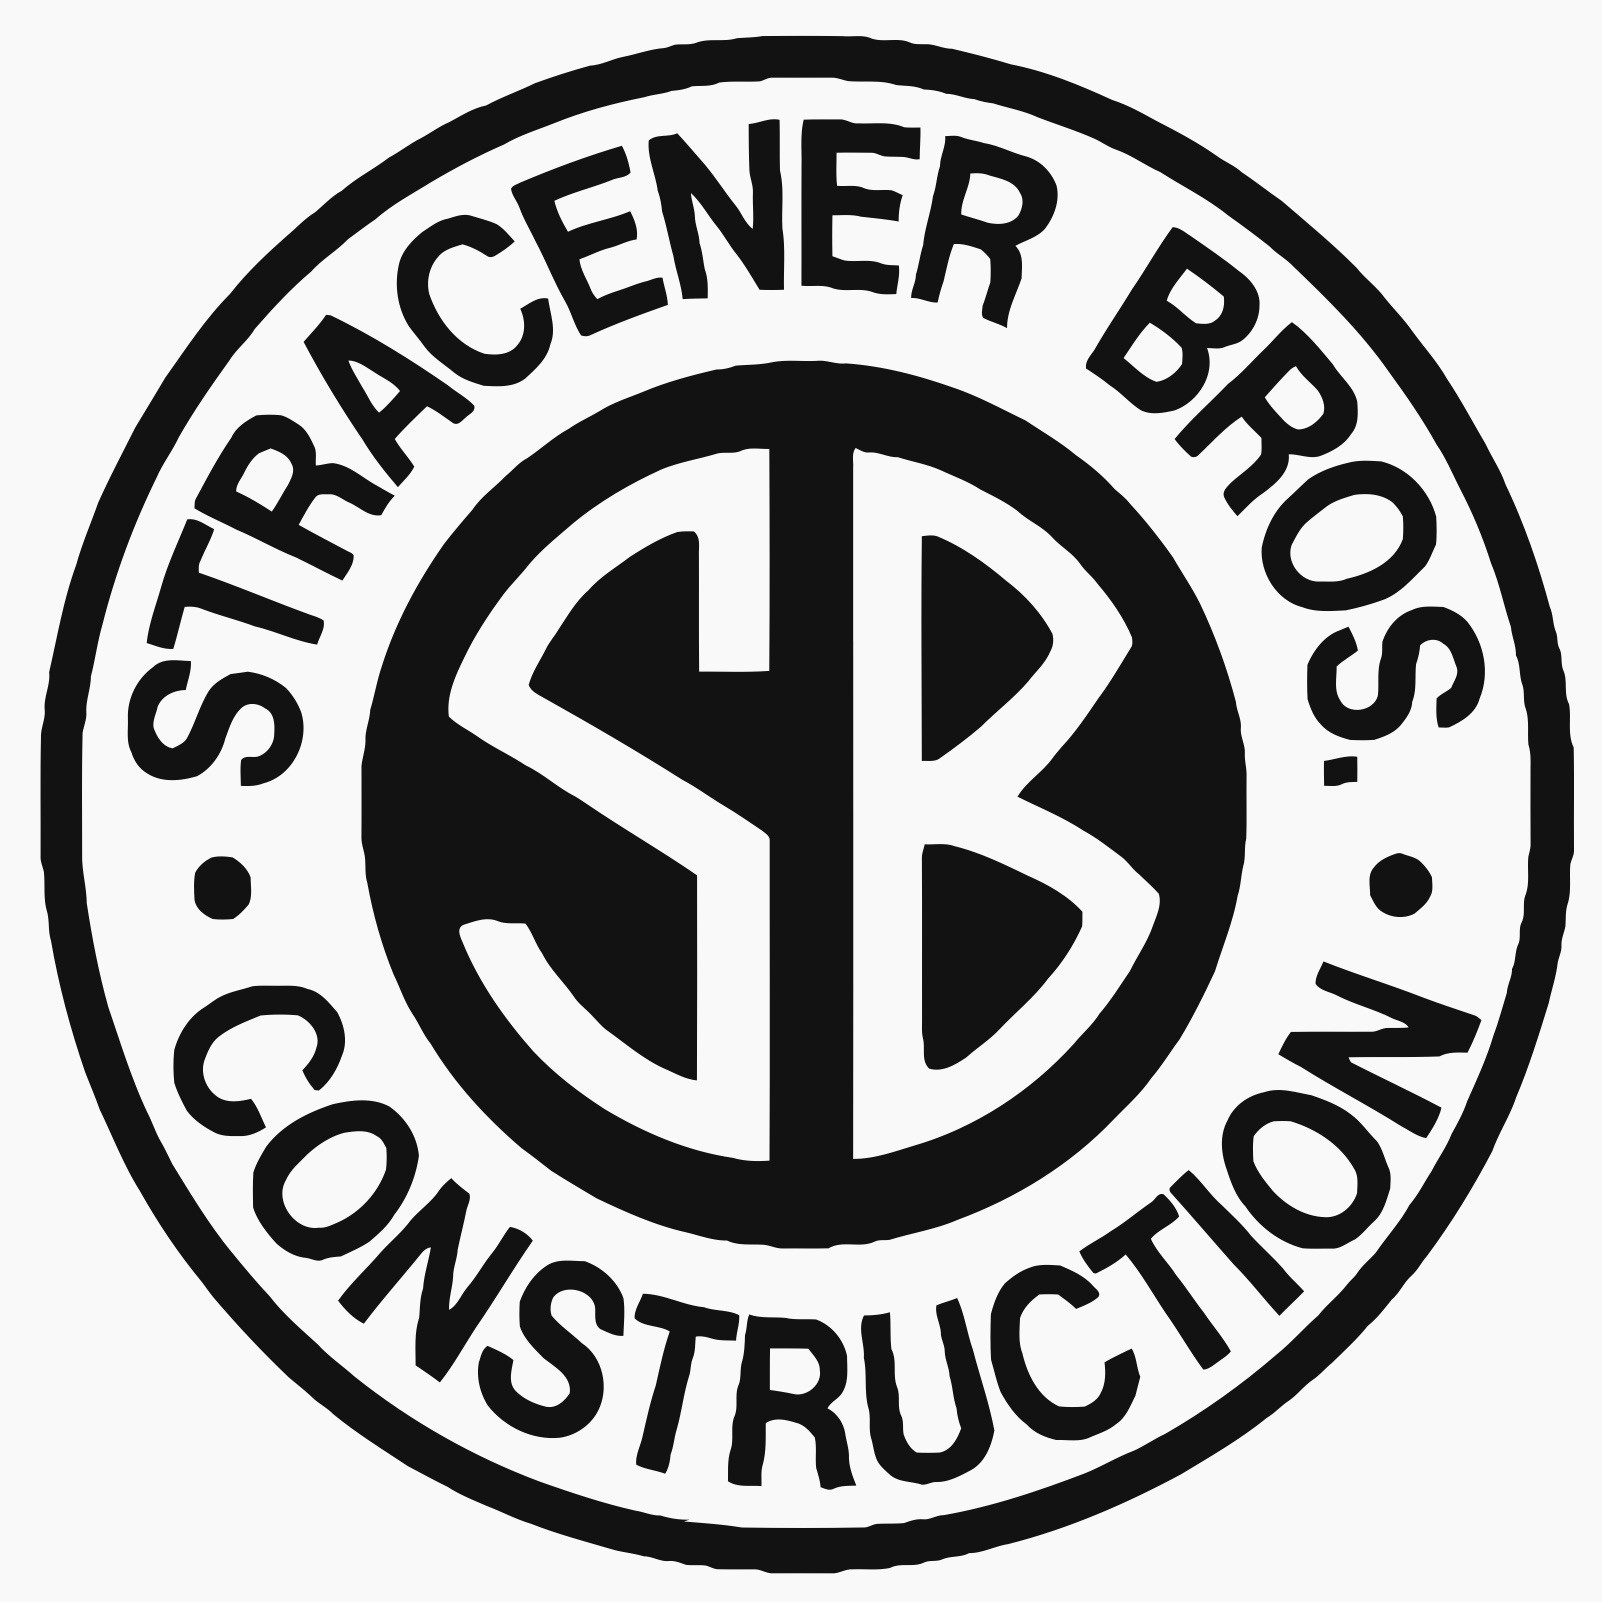 Stracener Brothers